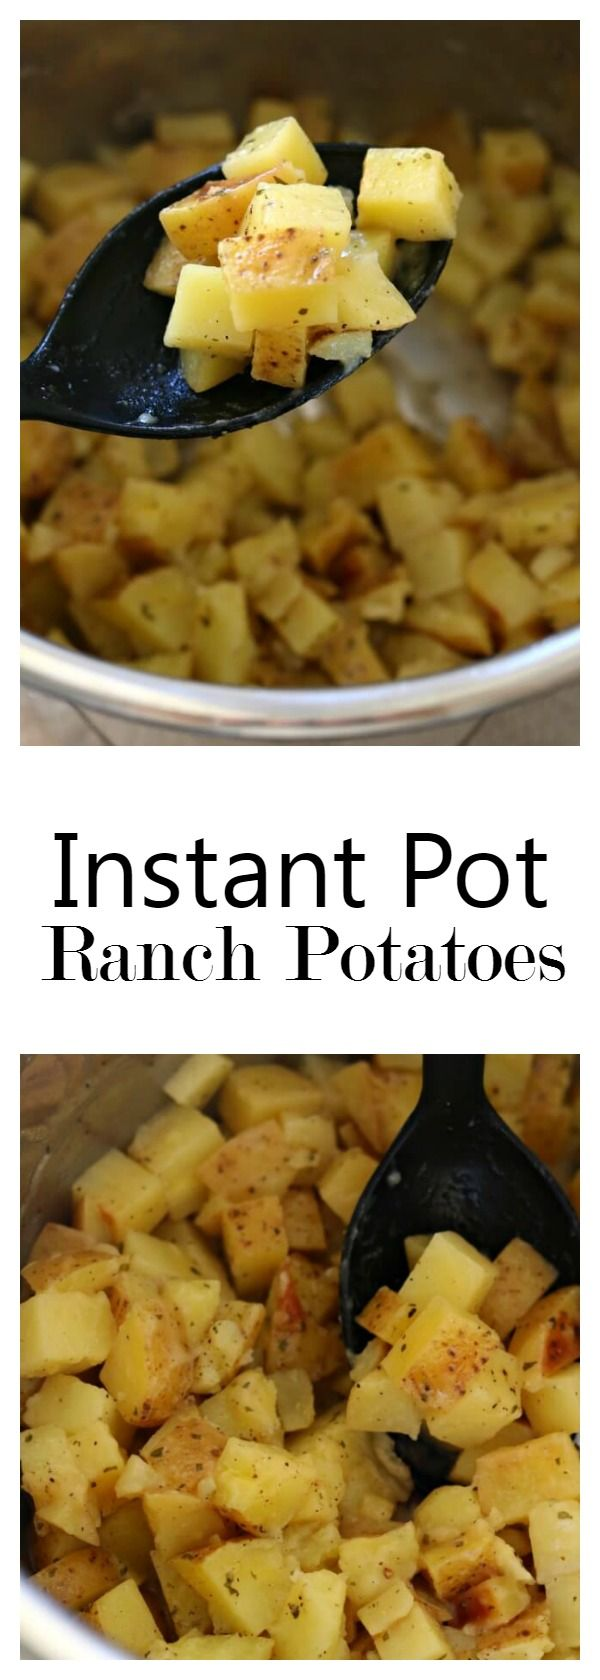 Instant Pot Ranch Potatoes–the easiest and fastest potatoes ever! This side dish of cubed yellow potatoes with ranch dressing seasoning and a little bit of butter couldn't be easier to make but these potatoes will be eaten in no time. The perfect side dish to any meal. #instantpot